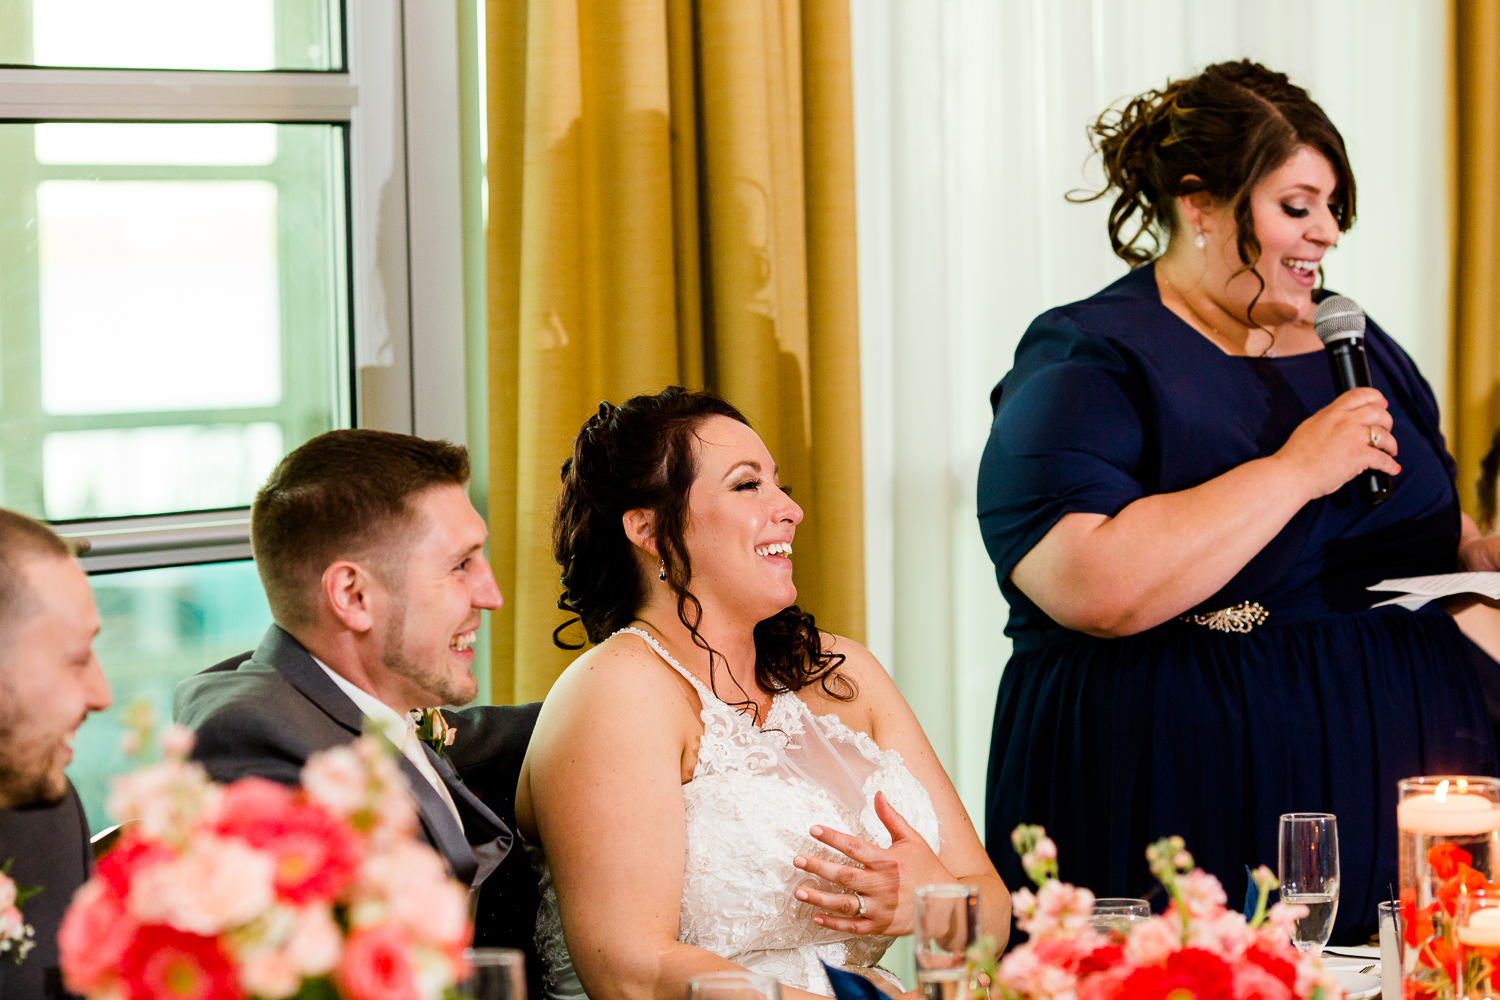 The bride laughs as her maid of honor delievers a toast.